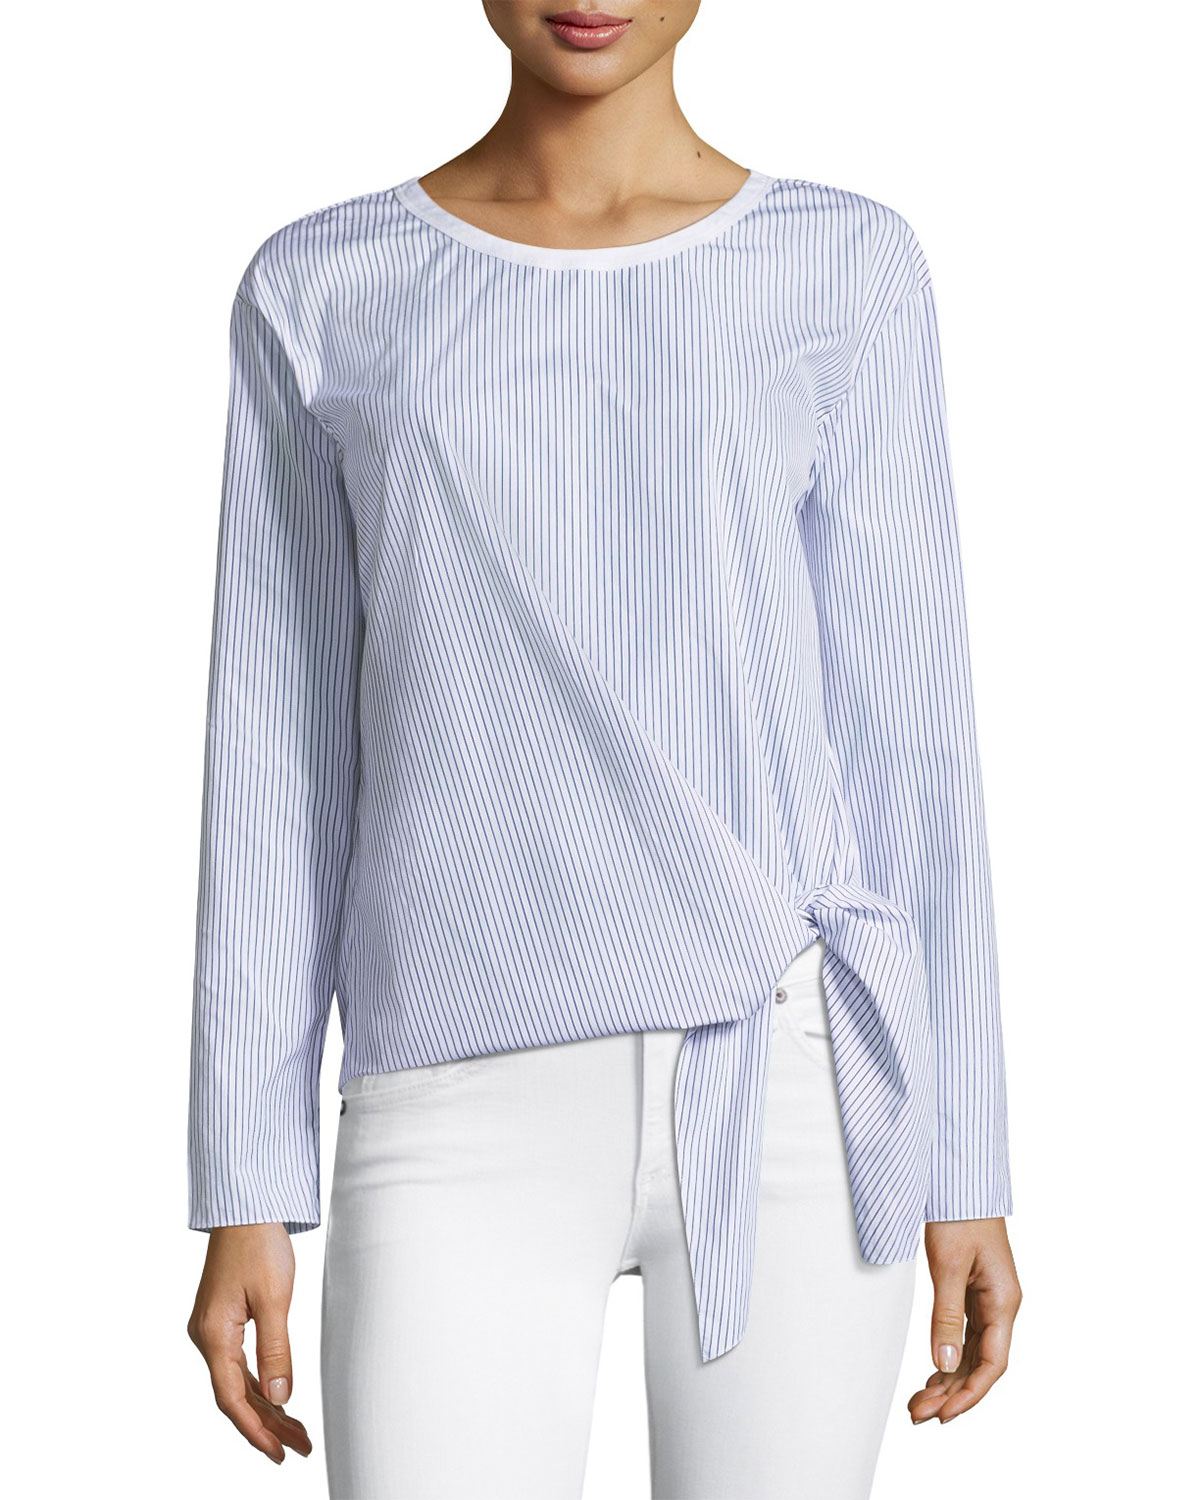 Serah Chilmark Tie-Hem Striped Poplin Top